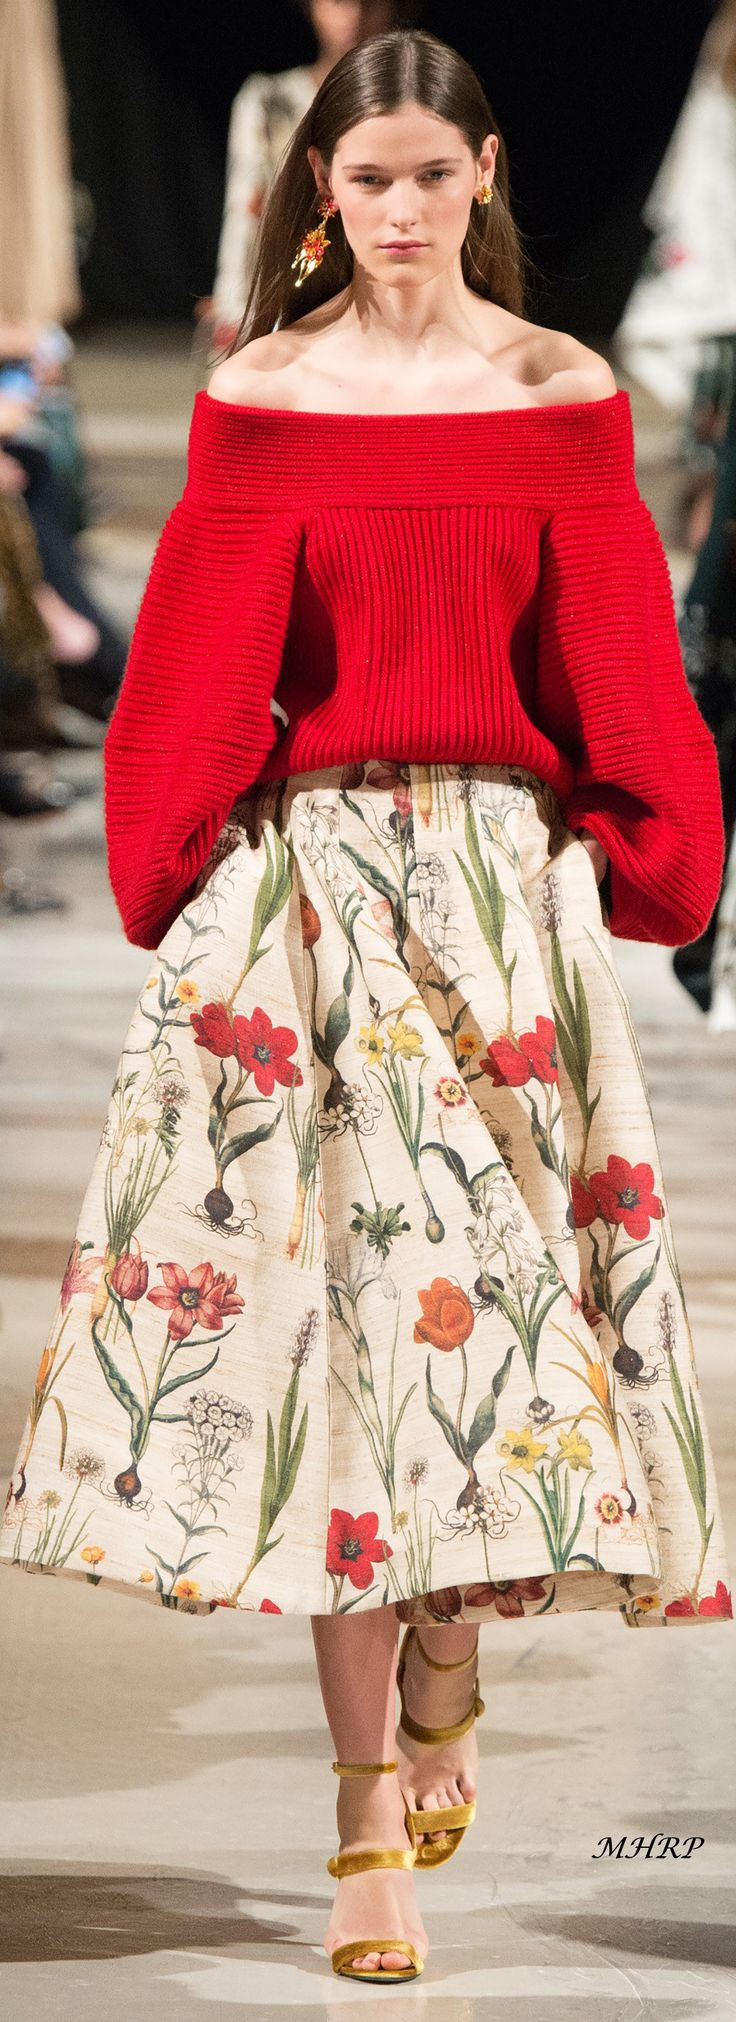 Oscar de la Renta Fall 2018_Vogue/Runway